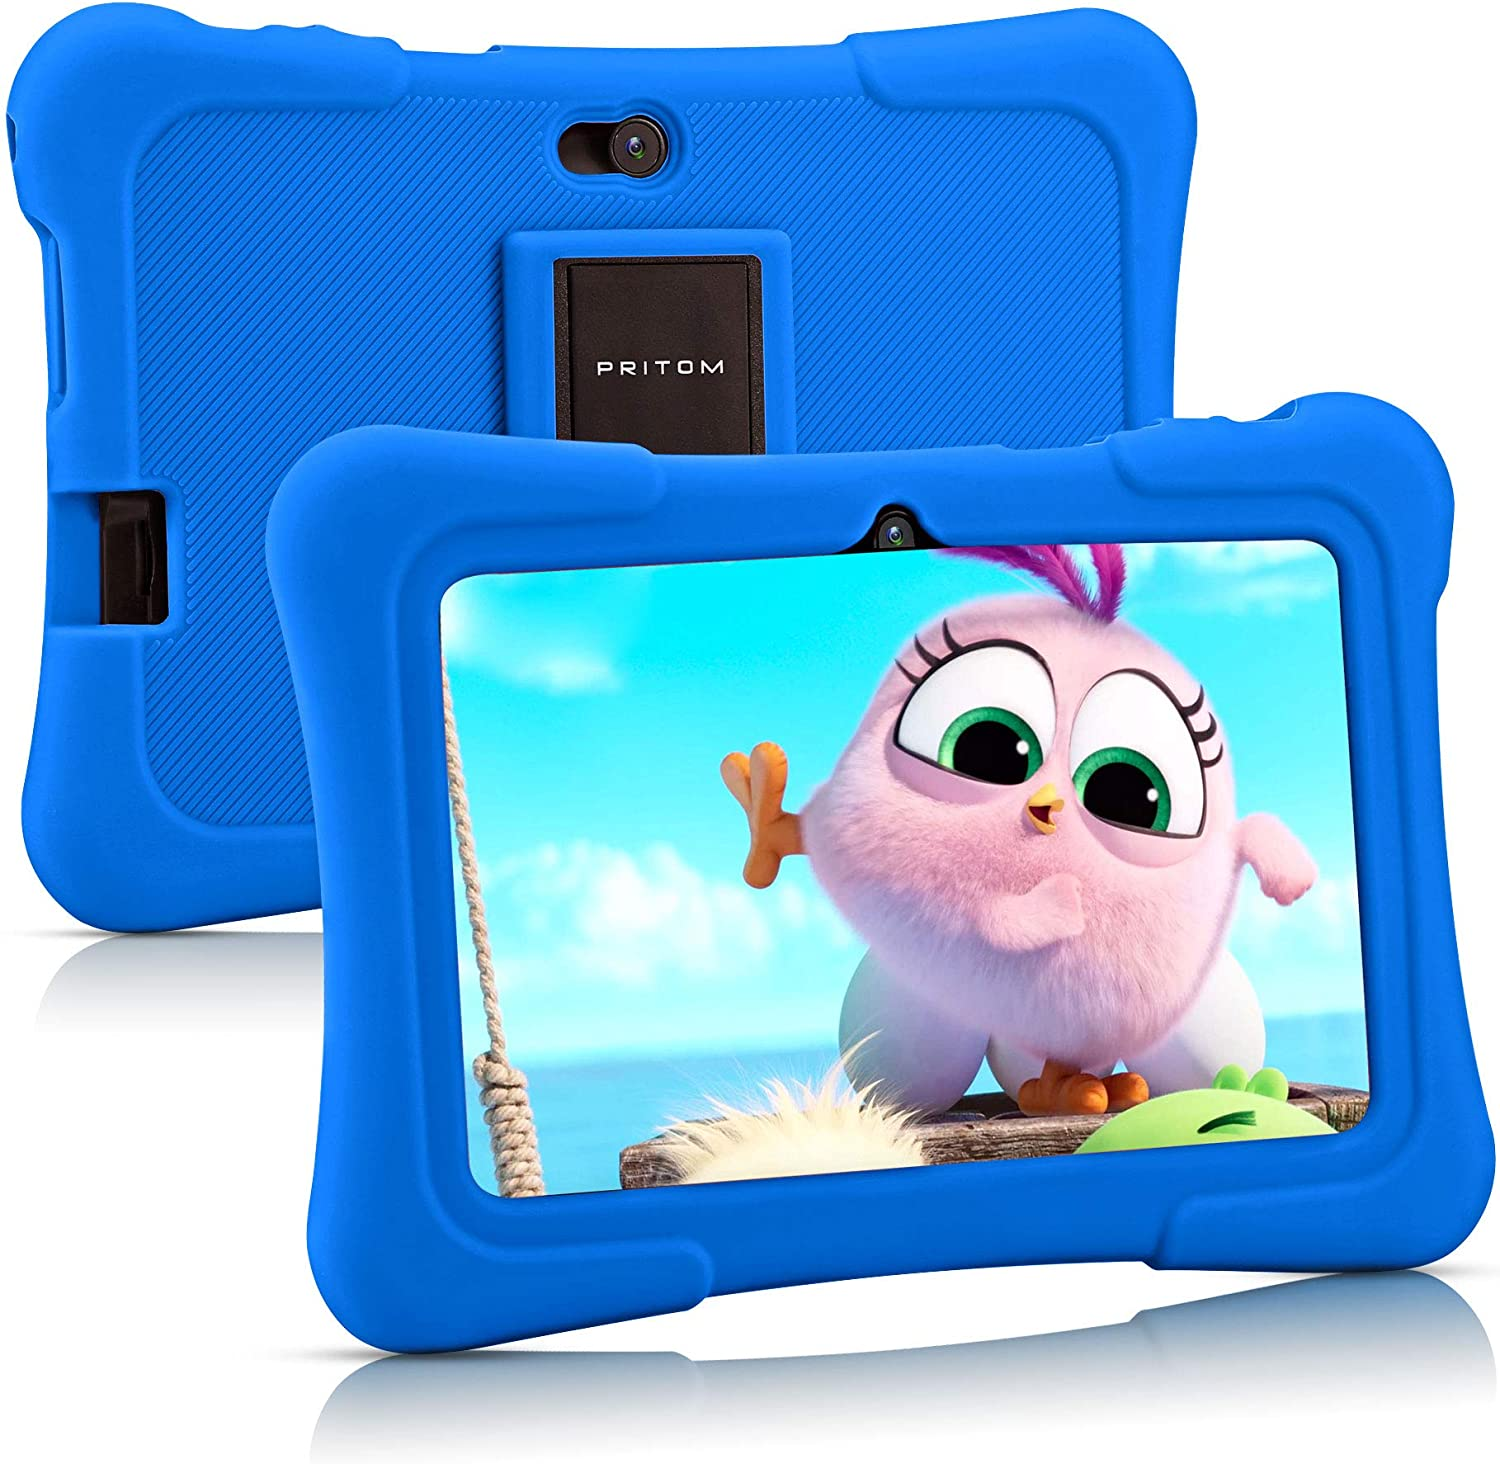 Pritom 7 inch NEW before selling ☆ Kids Tablet Quad 10 16GB Max 67% OFF Android Core Blu WiFi